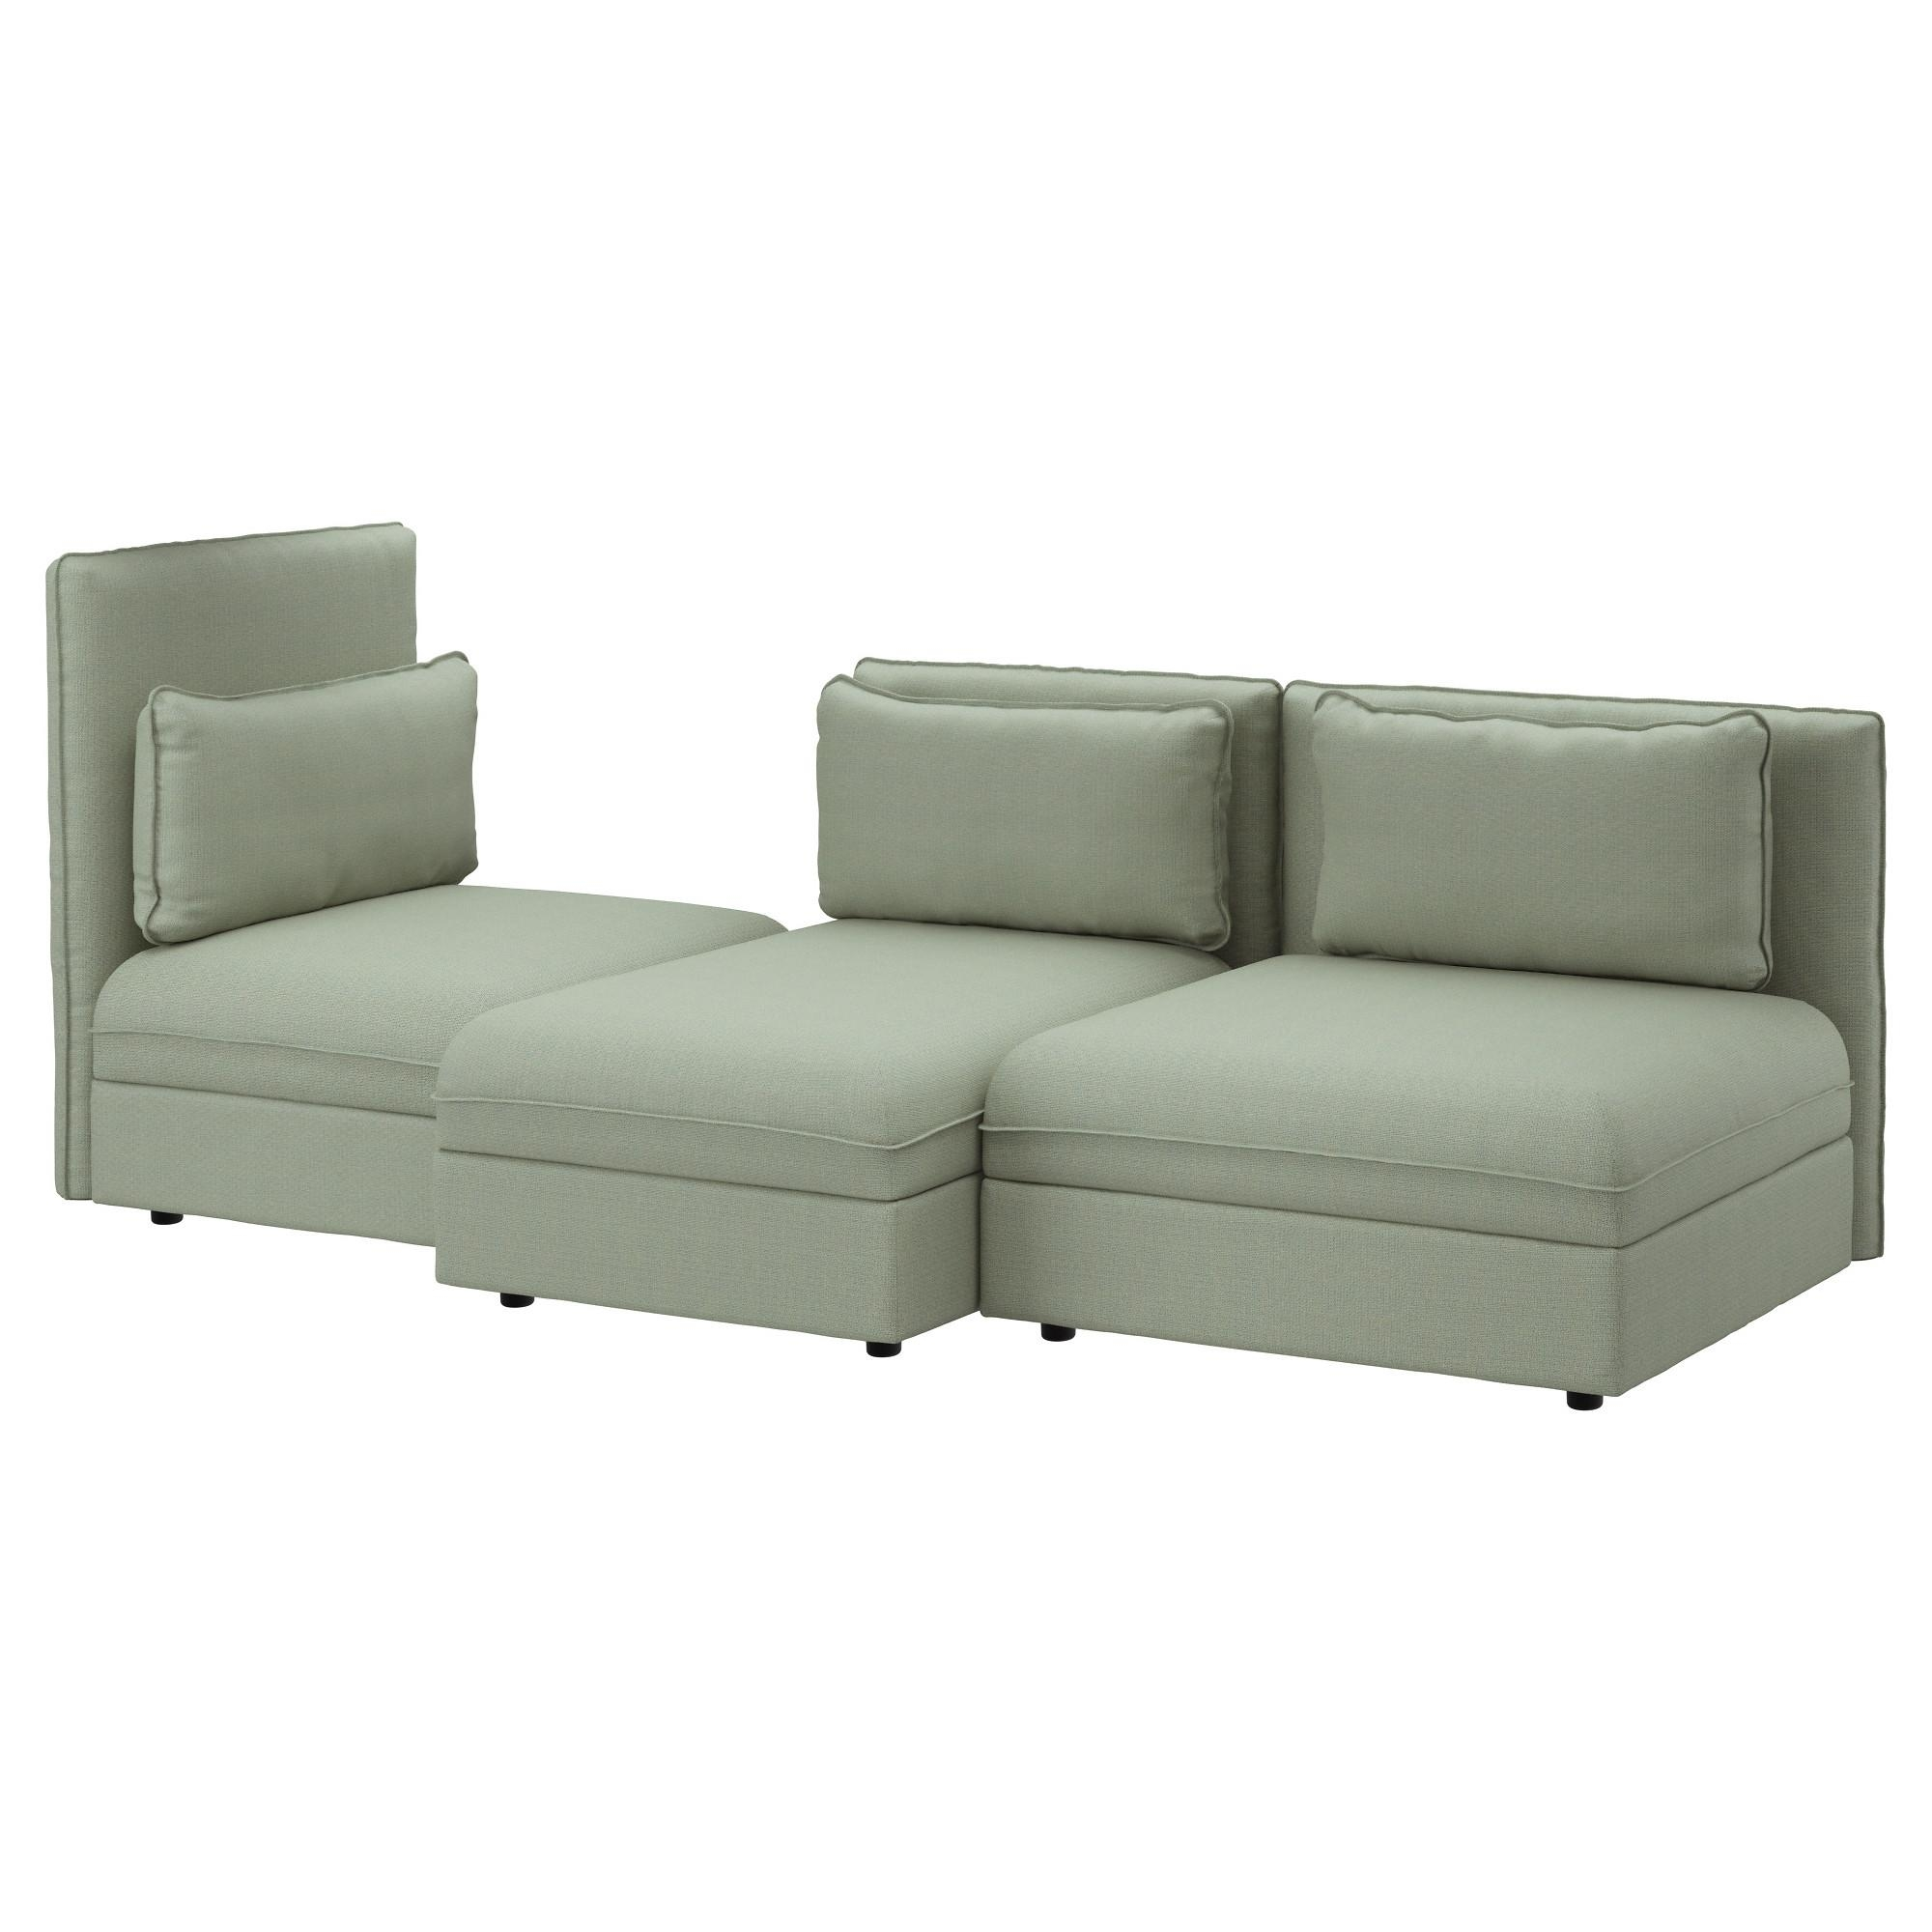 20 photos ikea chaise lounge sofa sofa ideas for Chaise urban ikea